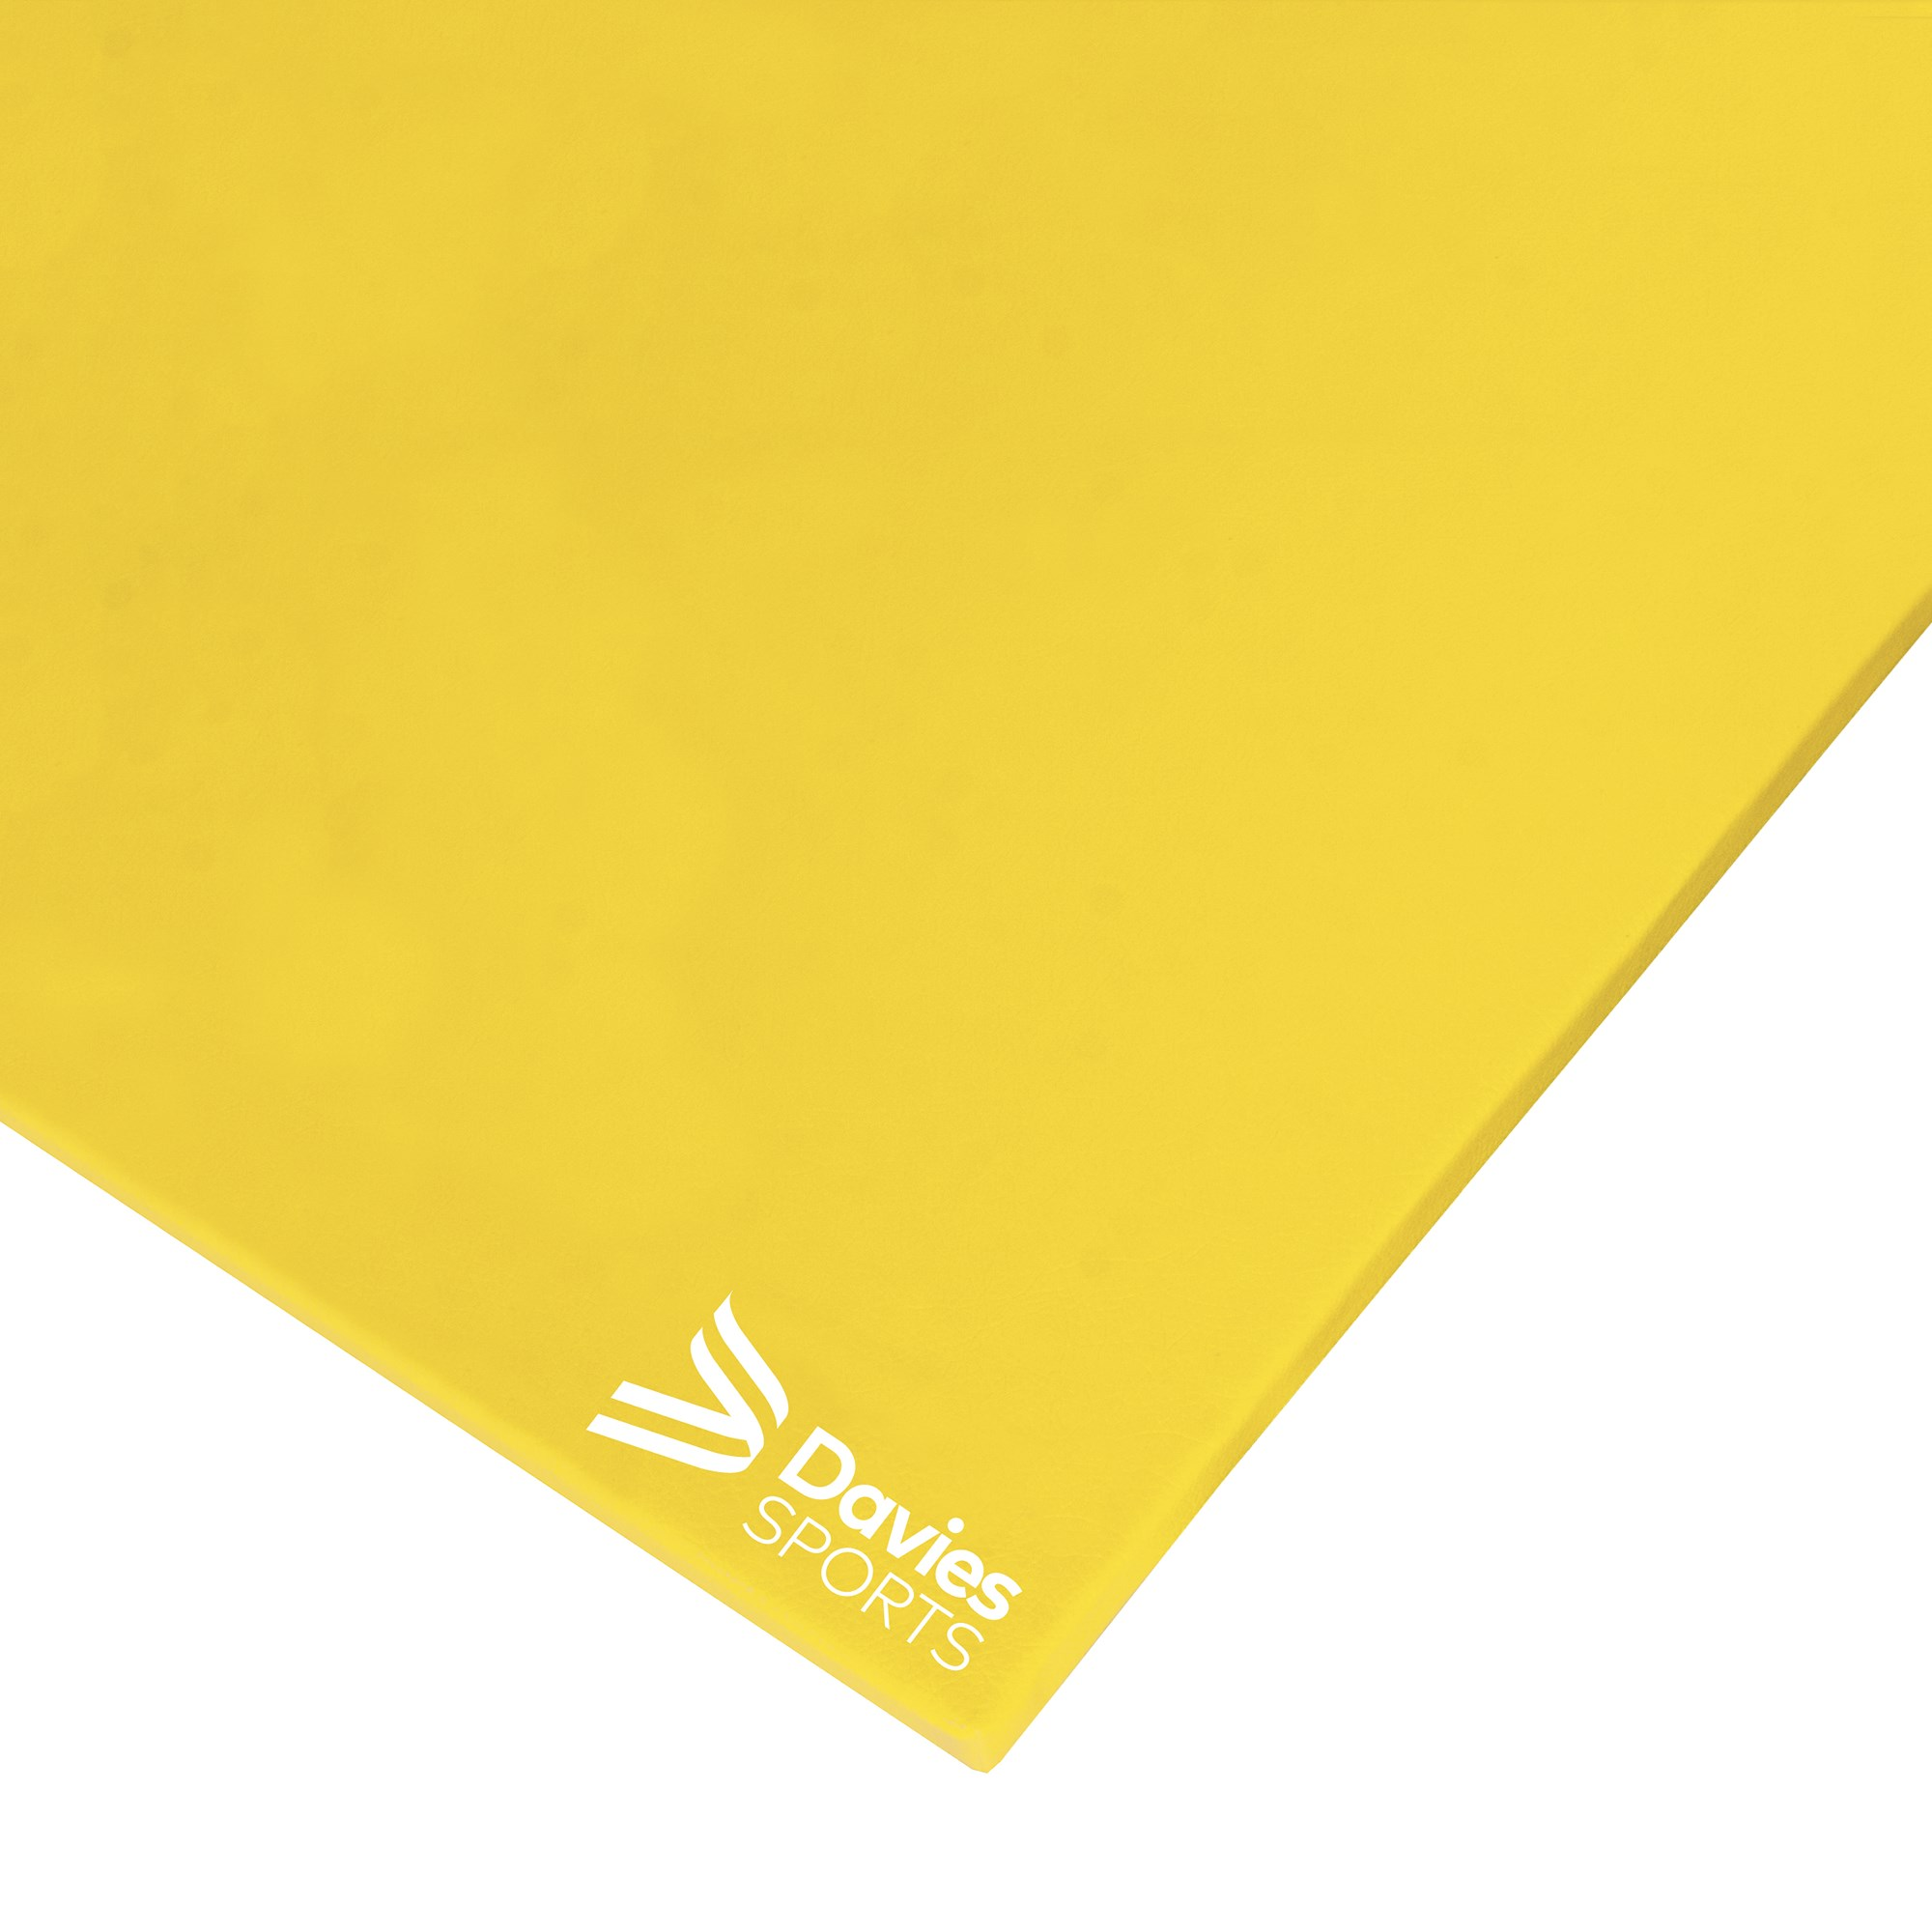 Davies Sports Deluxe Chipfoam Mat Rainbow Yellow - 1.83m x 1.22m x 19mm